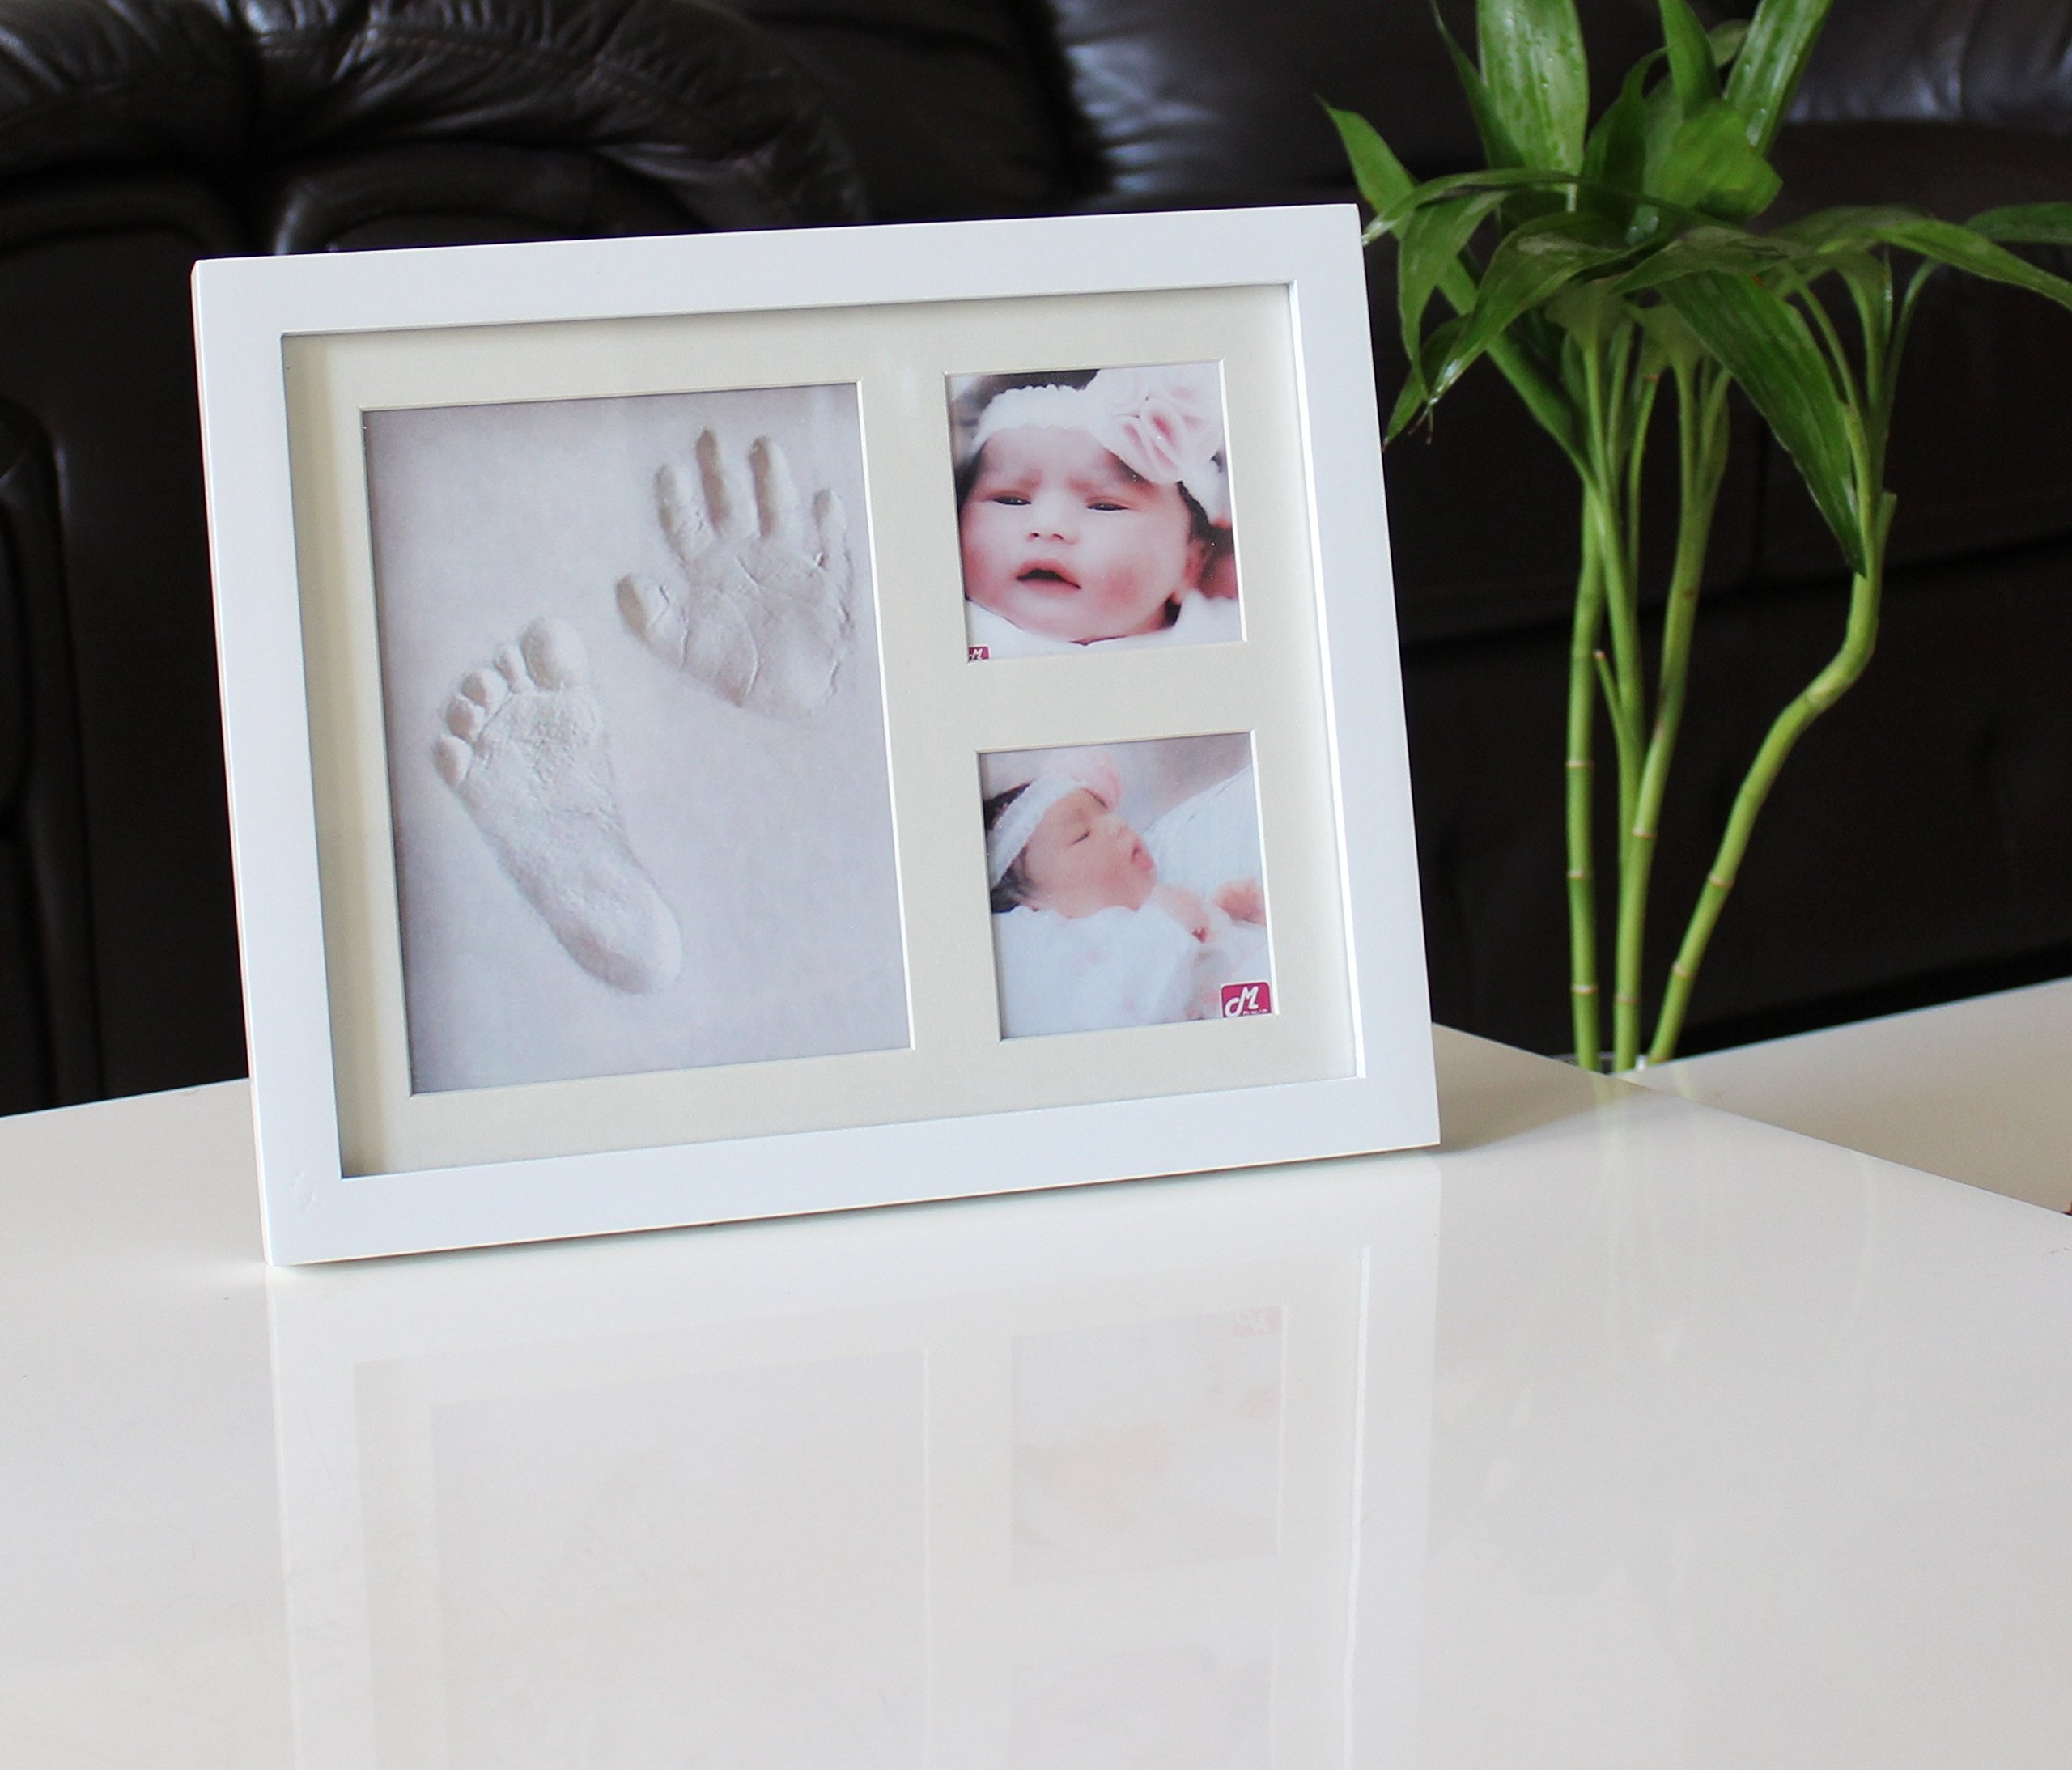 DiMOD Baby Handprint & Footprint Photo Frame Kit for Boys and Girls Baby gifts for room and wall decorations